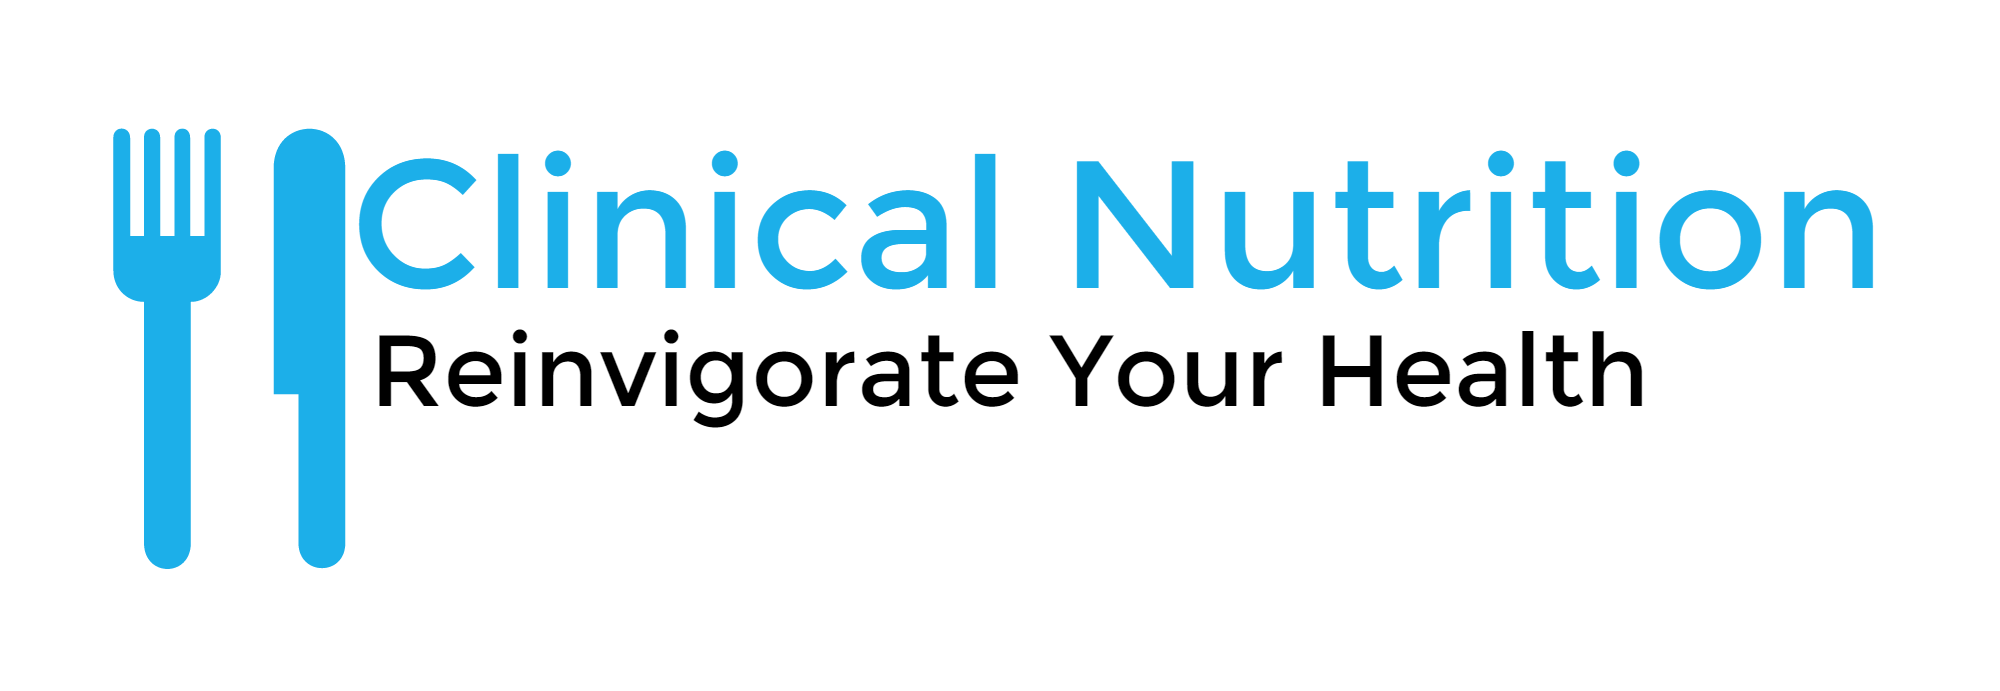 Enliven Clinical Nutrition logo